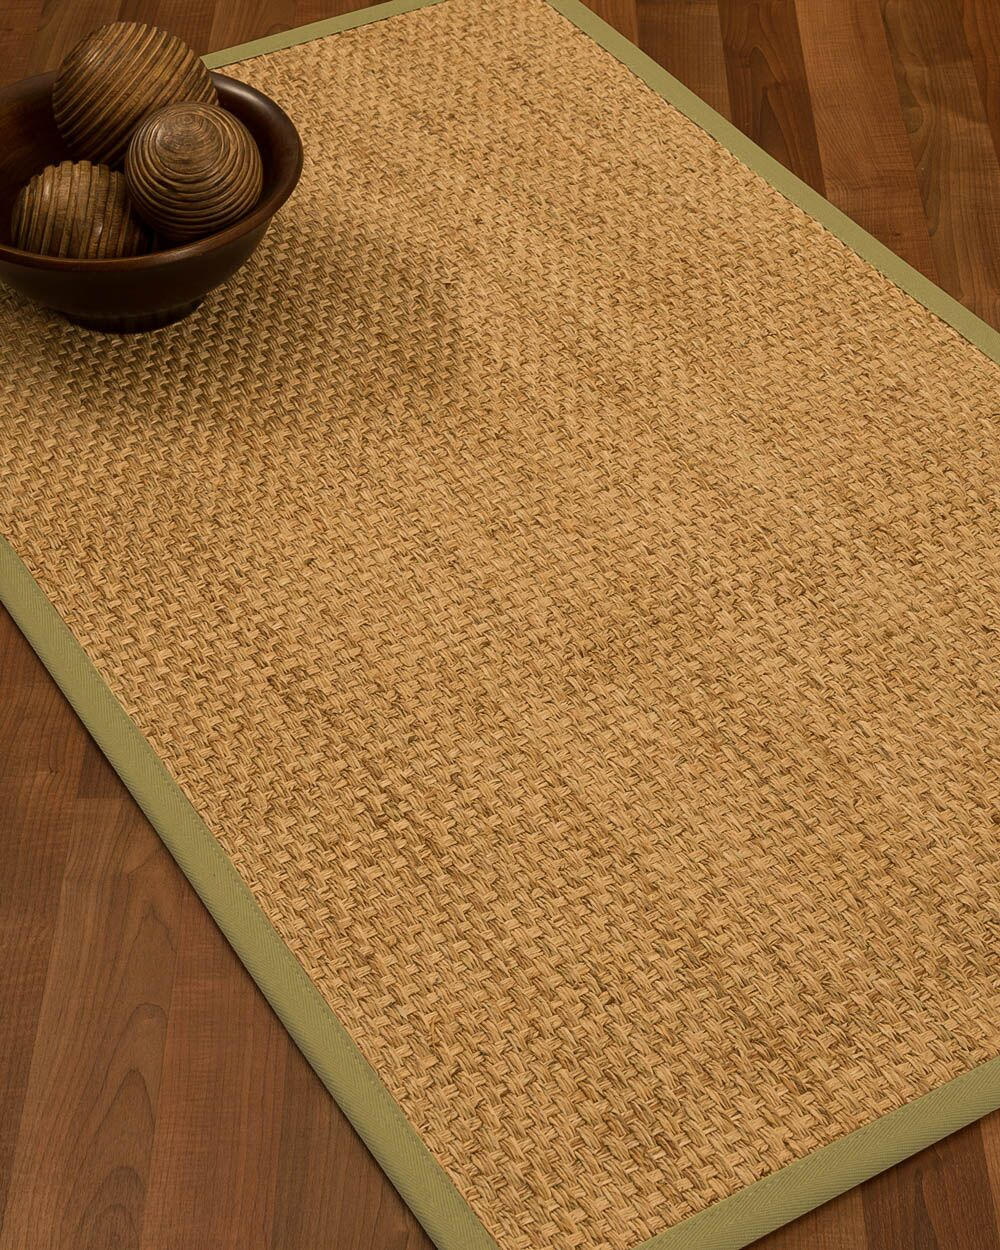 Caster Border Hand-Woven Beige/Khaki Area Rug Rug Size: Rectangle 12' x 15', Rug Pad Included: Yes